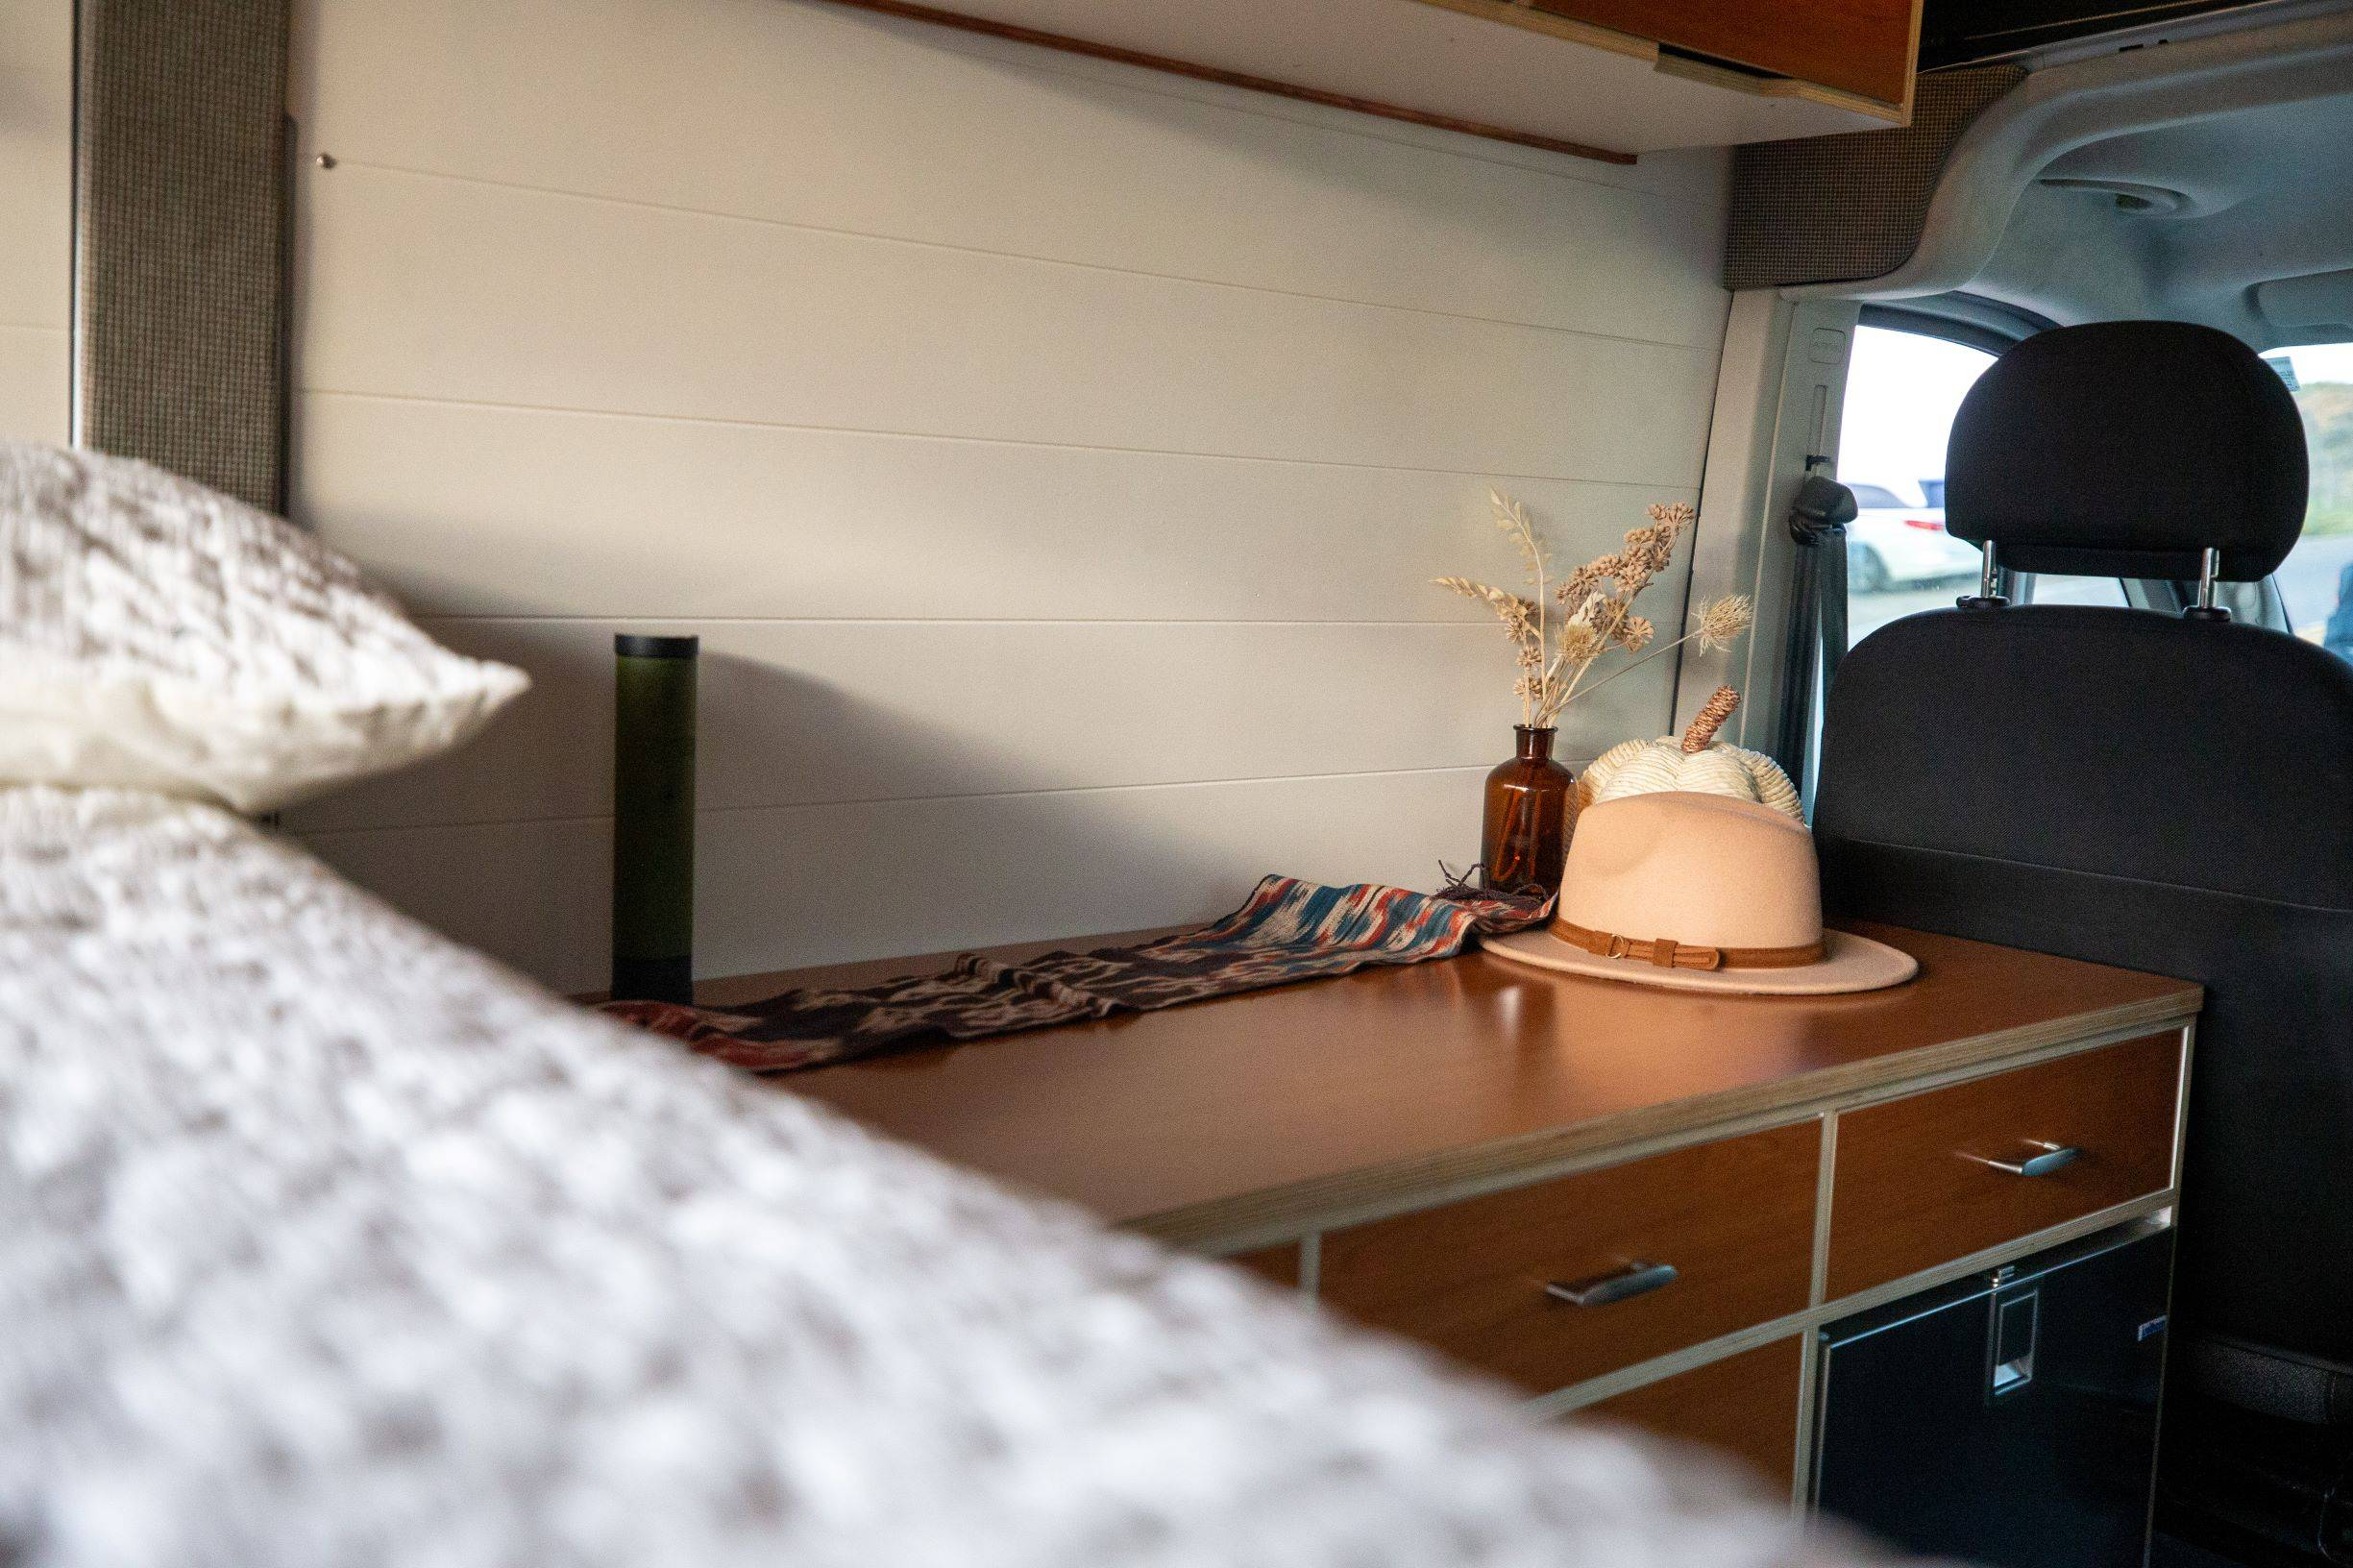 The Bivy - Sprinter 144 / ProMaster 136 Van Conversion - Galley / Interior Cabinets from Bed - The Vansmith